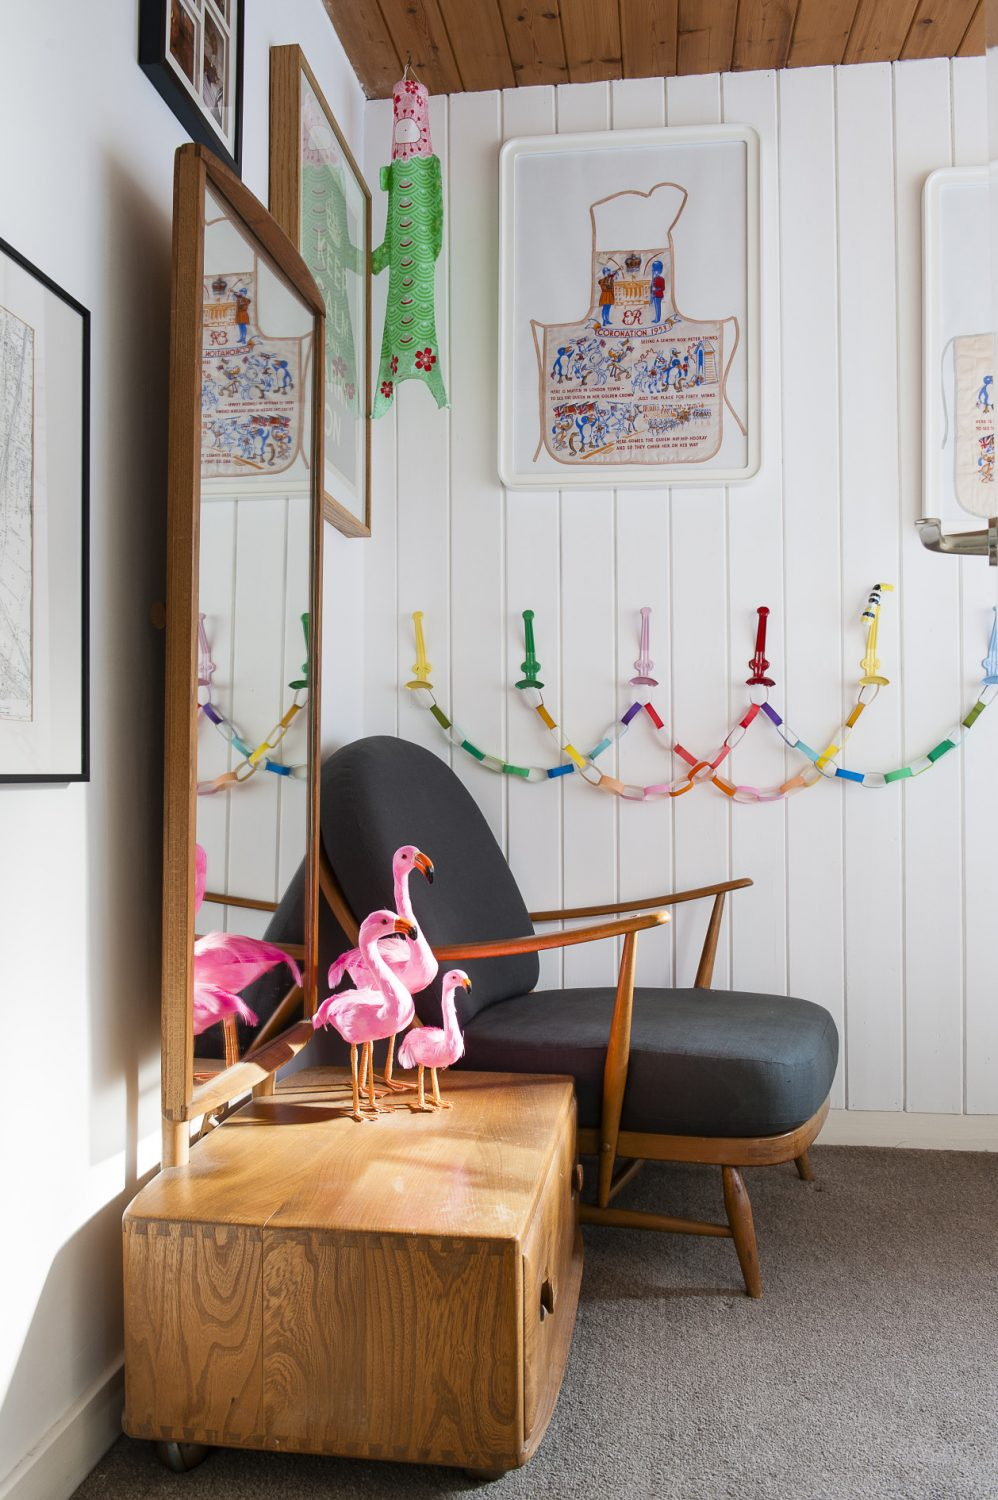 A family of flamingos reside in the spare room